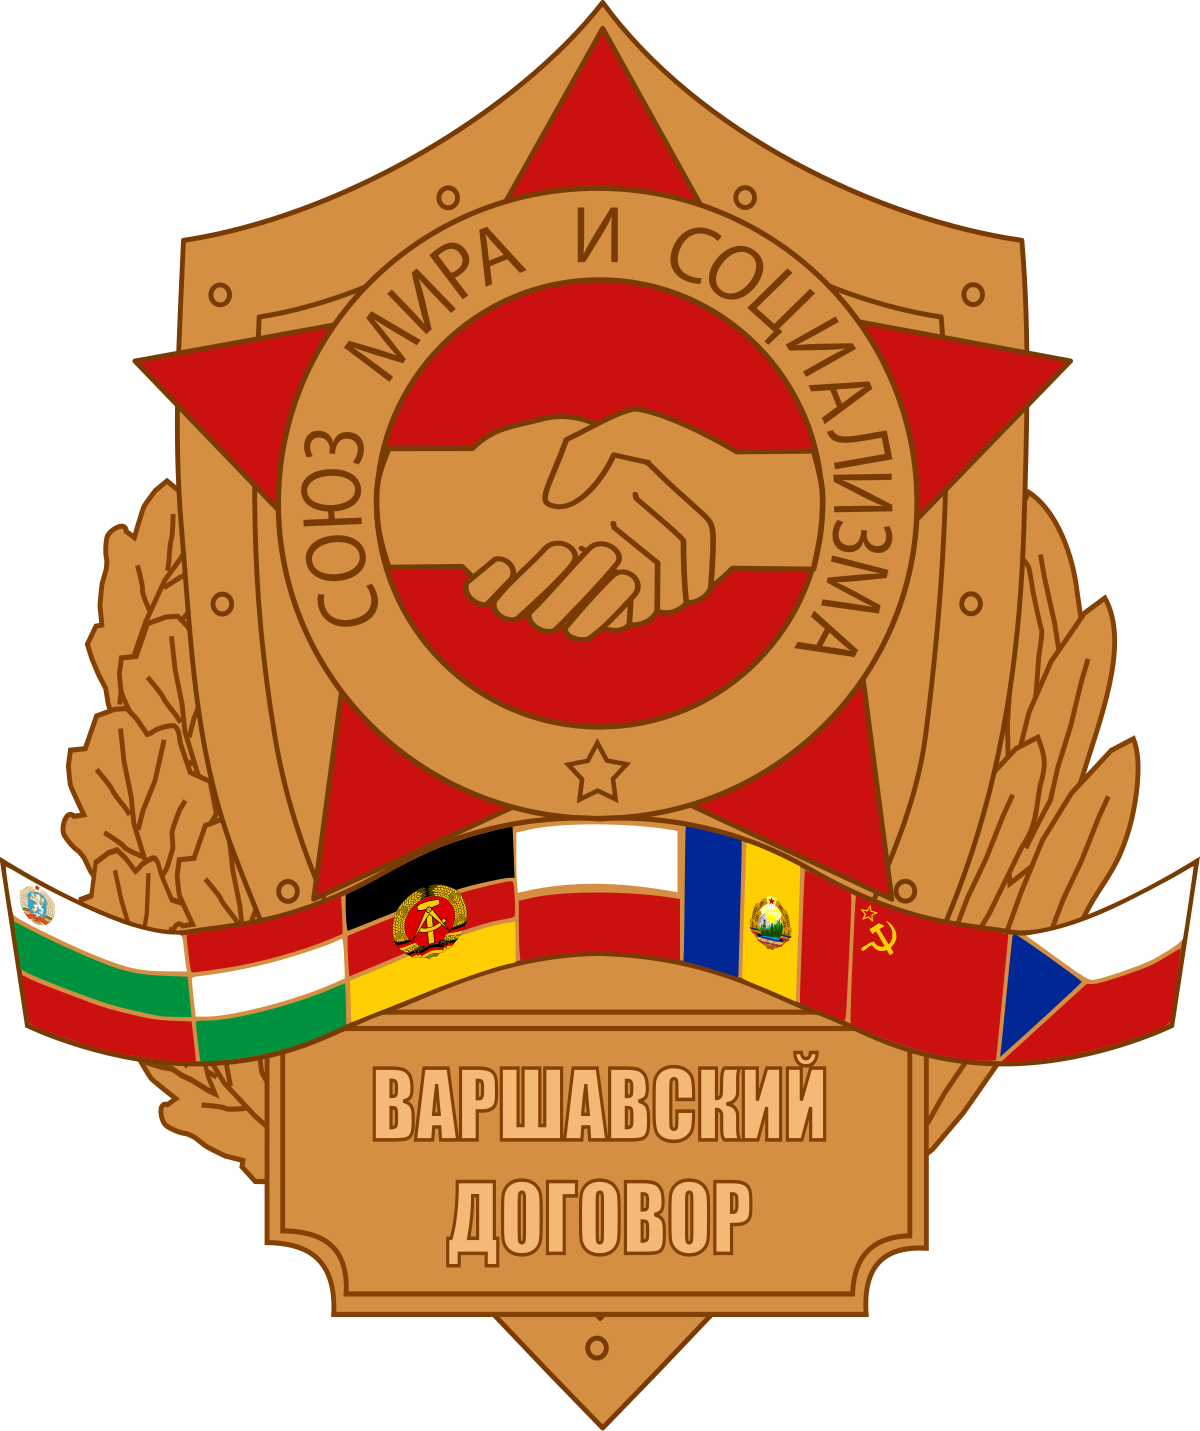 14th May 1955: The establishment of the Warsaw Pact | HistoryPod